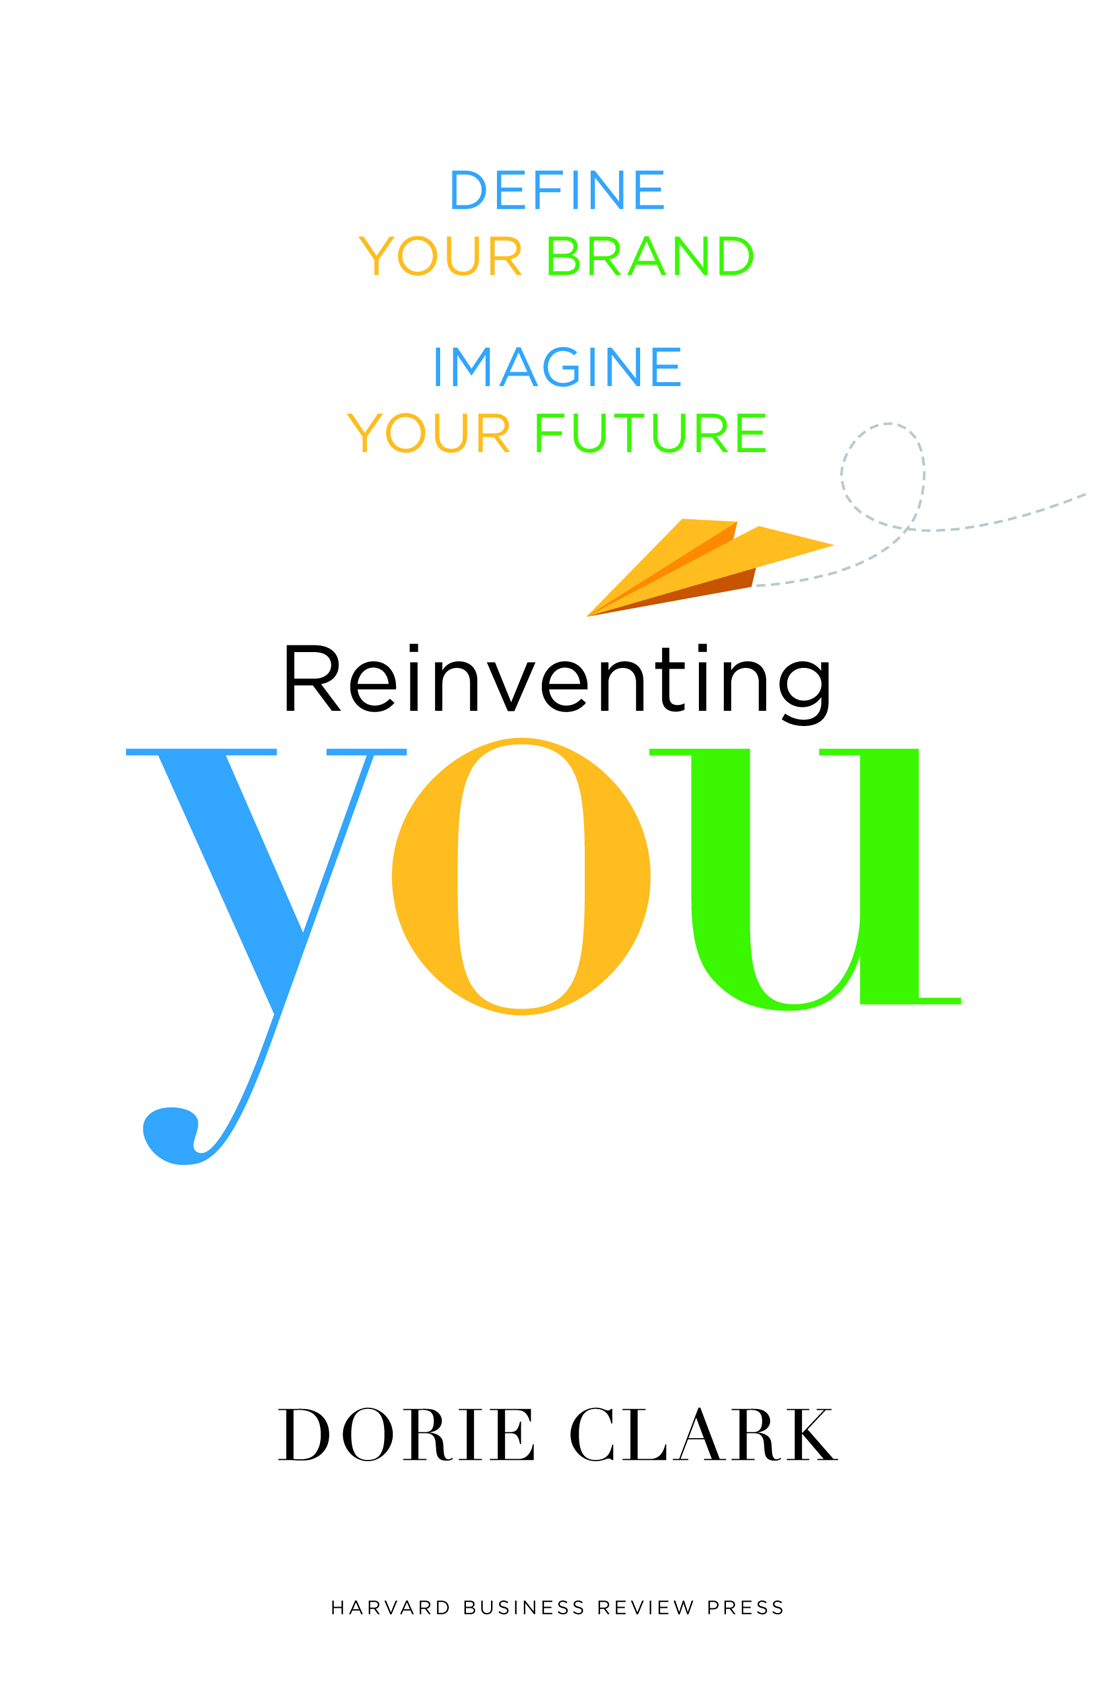 REINVENTING YOU: A step-by-step guide to reinventing you.